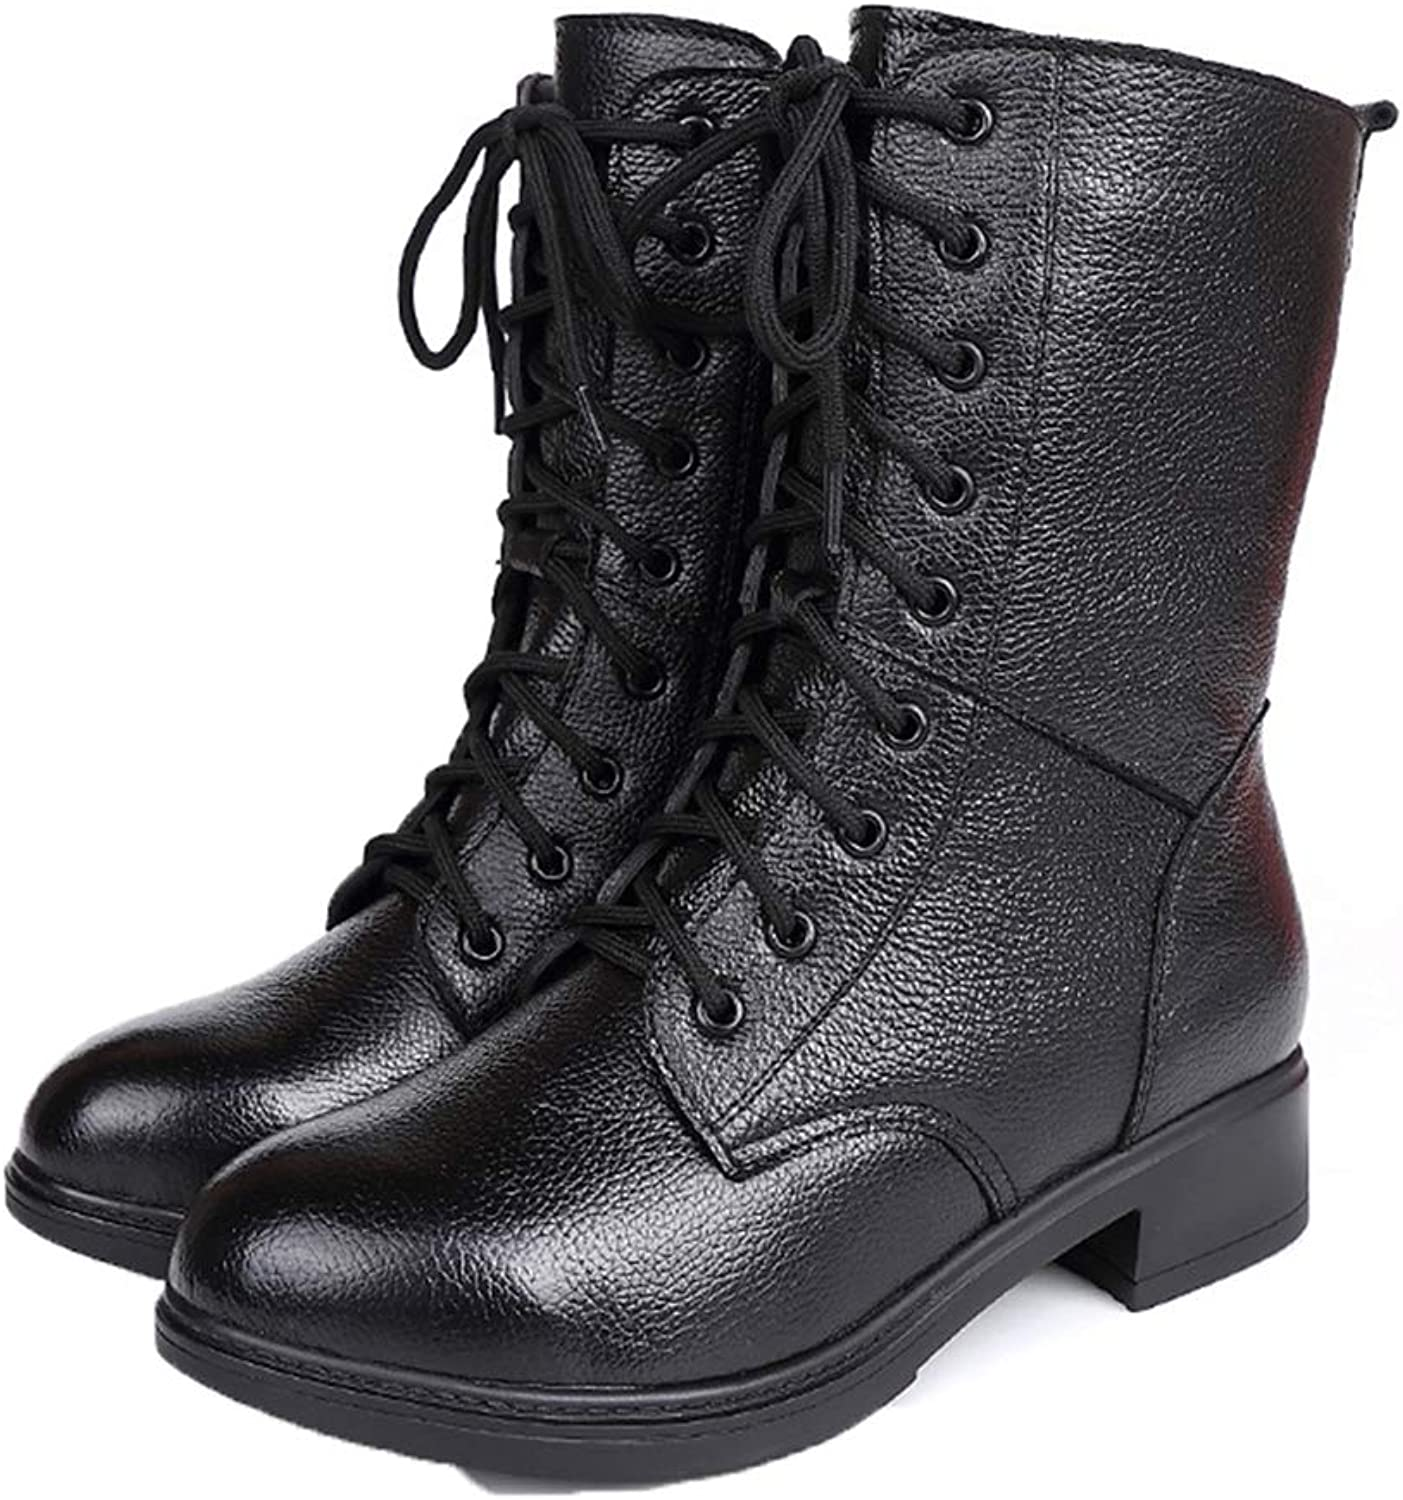 Jim Hugh Women Genuine Leather Lace Mid Calf Boots Round Toe Motorcycle Combat shoes Solid Black